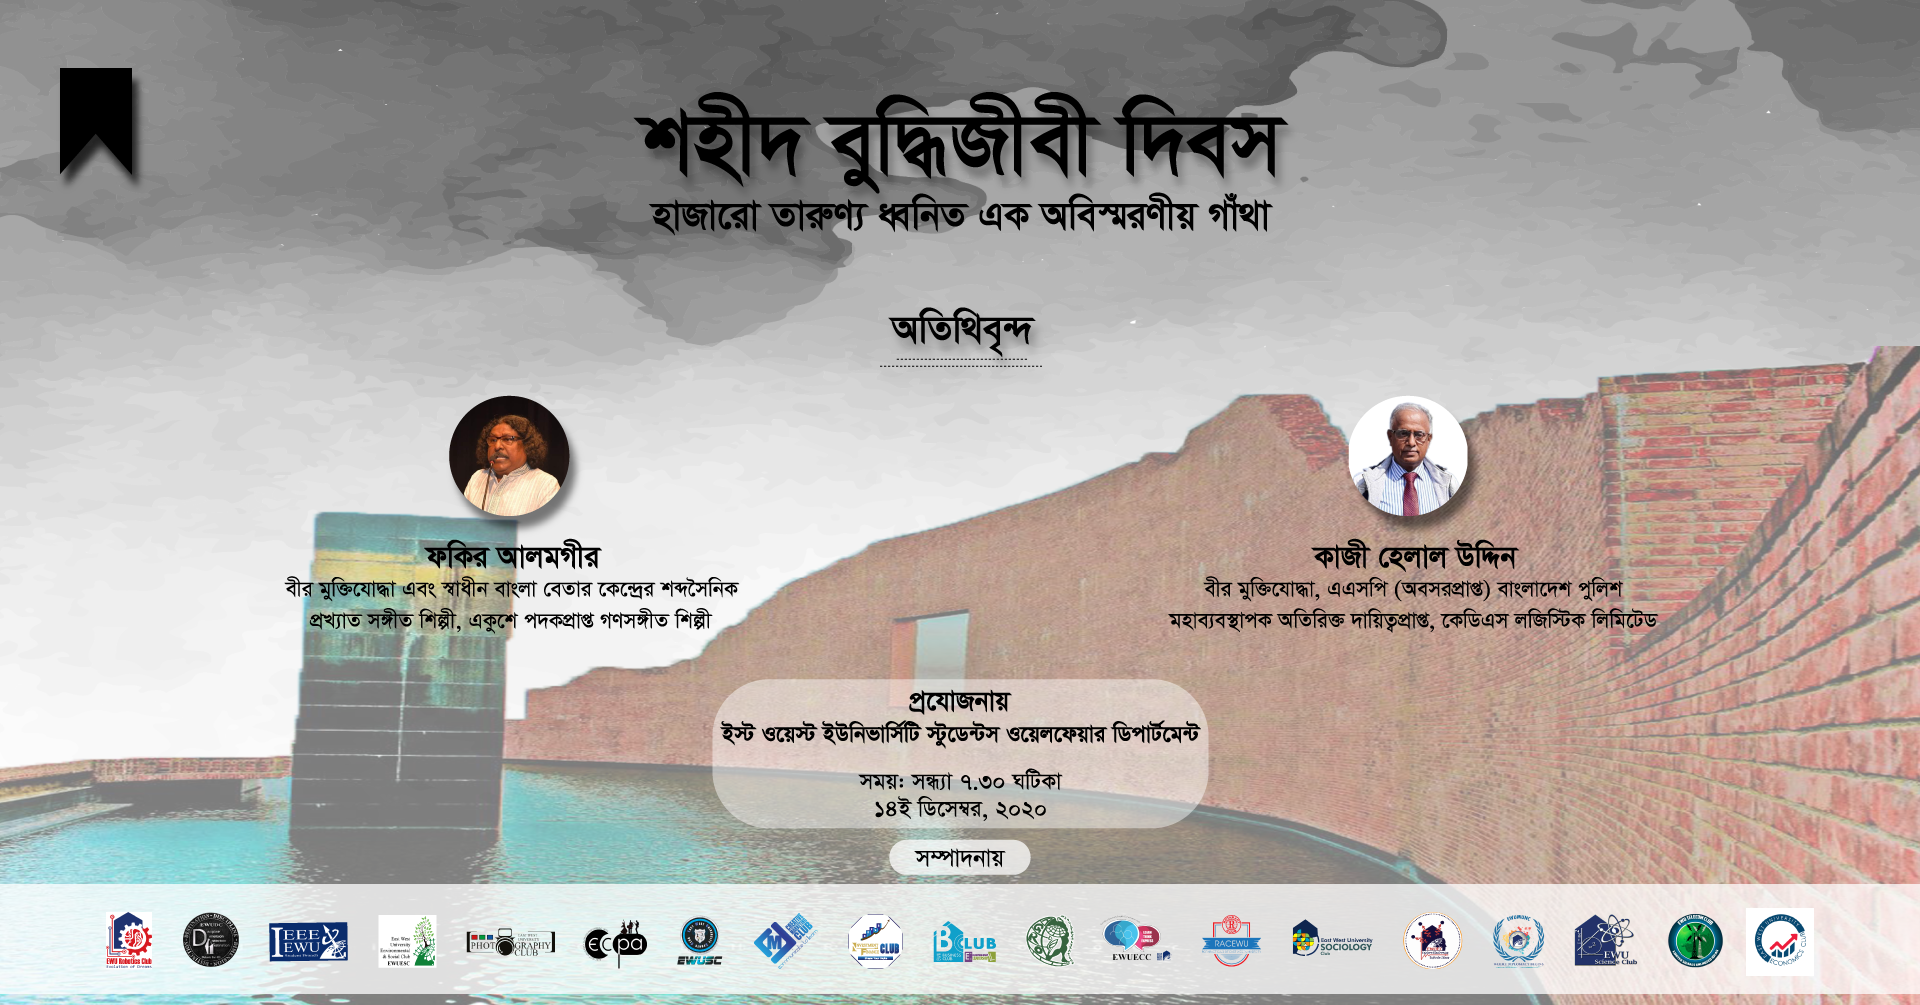 Martyred Intellectuals Day: Hajaro Tarunno Dhonito Ek Obishoronio Gatha